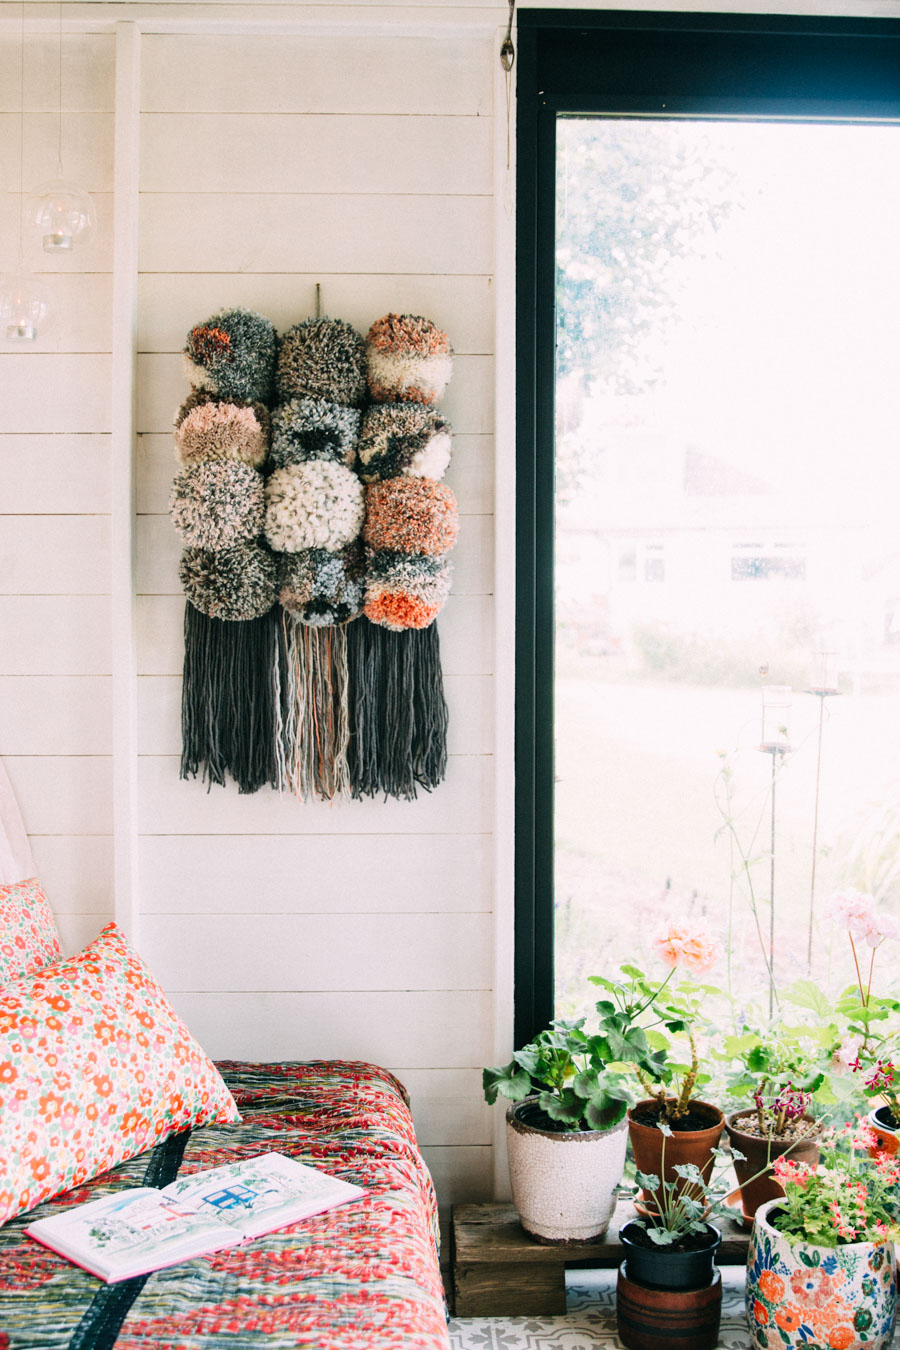 How to make a pom pom wall hanging. Tutorial by Lisa Tile for We Are Scout. Photo by Jeska Hearne of Lobster and Swan